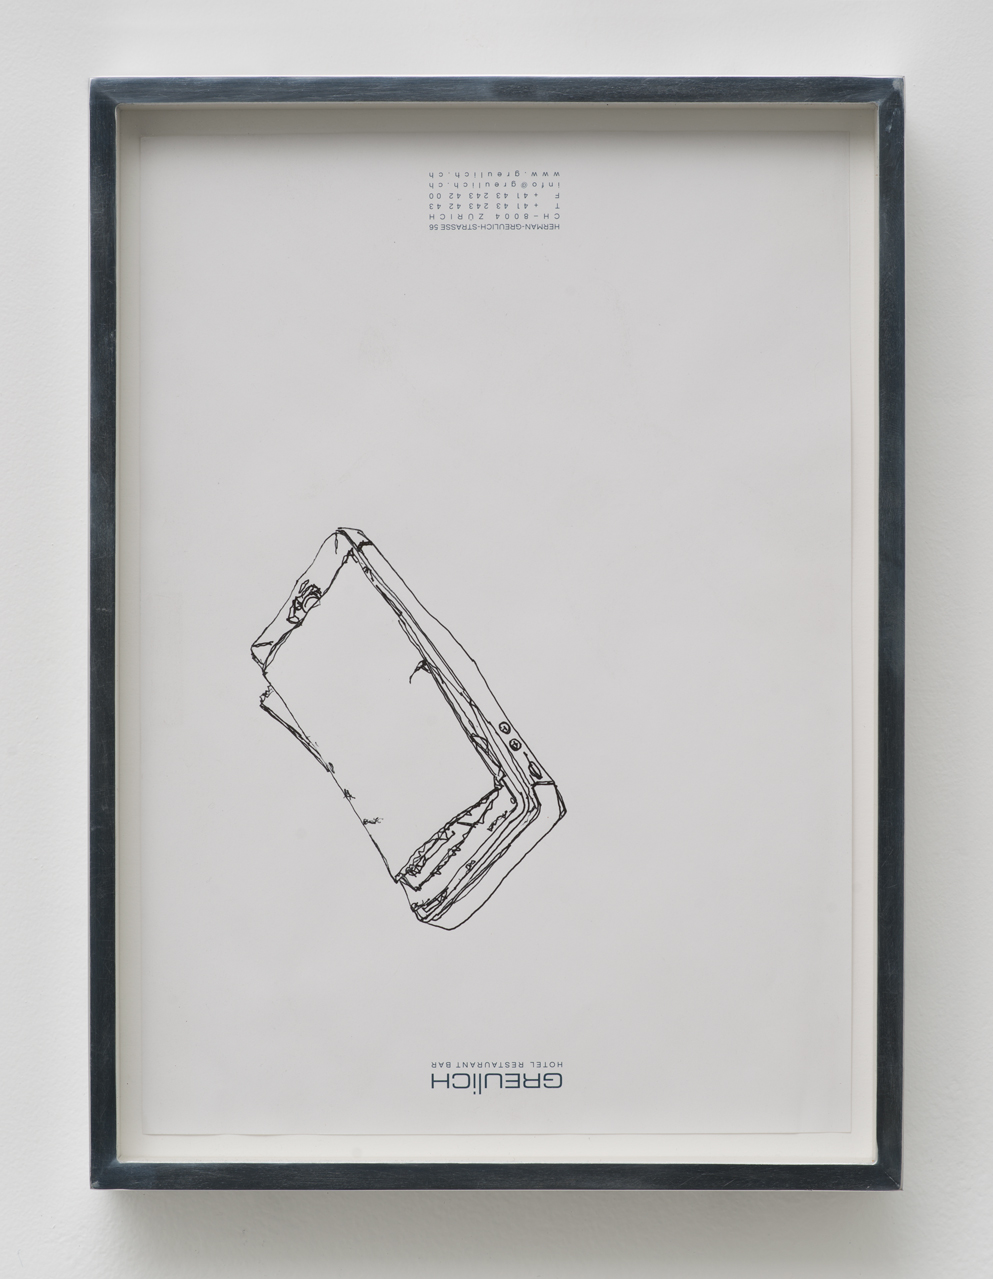 iPhone 5 A1429: Hotel Greulich, Zürich, Switzerland, September 26, 2014   2015  Ink on letterhead  12 7/8 x 9 1/2 inches   Drawings, 2014–    Walid AlBeshti, 2015    Atopolis, 2015